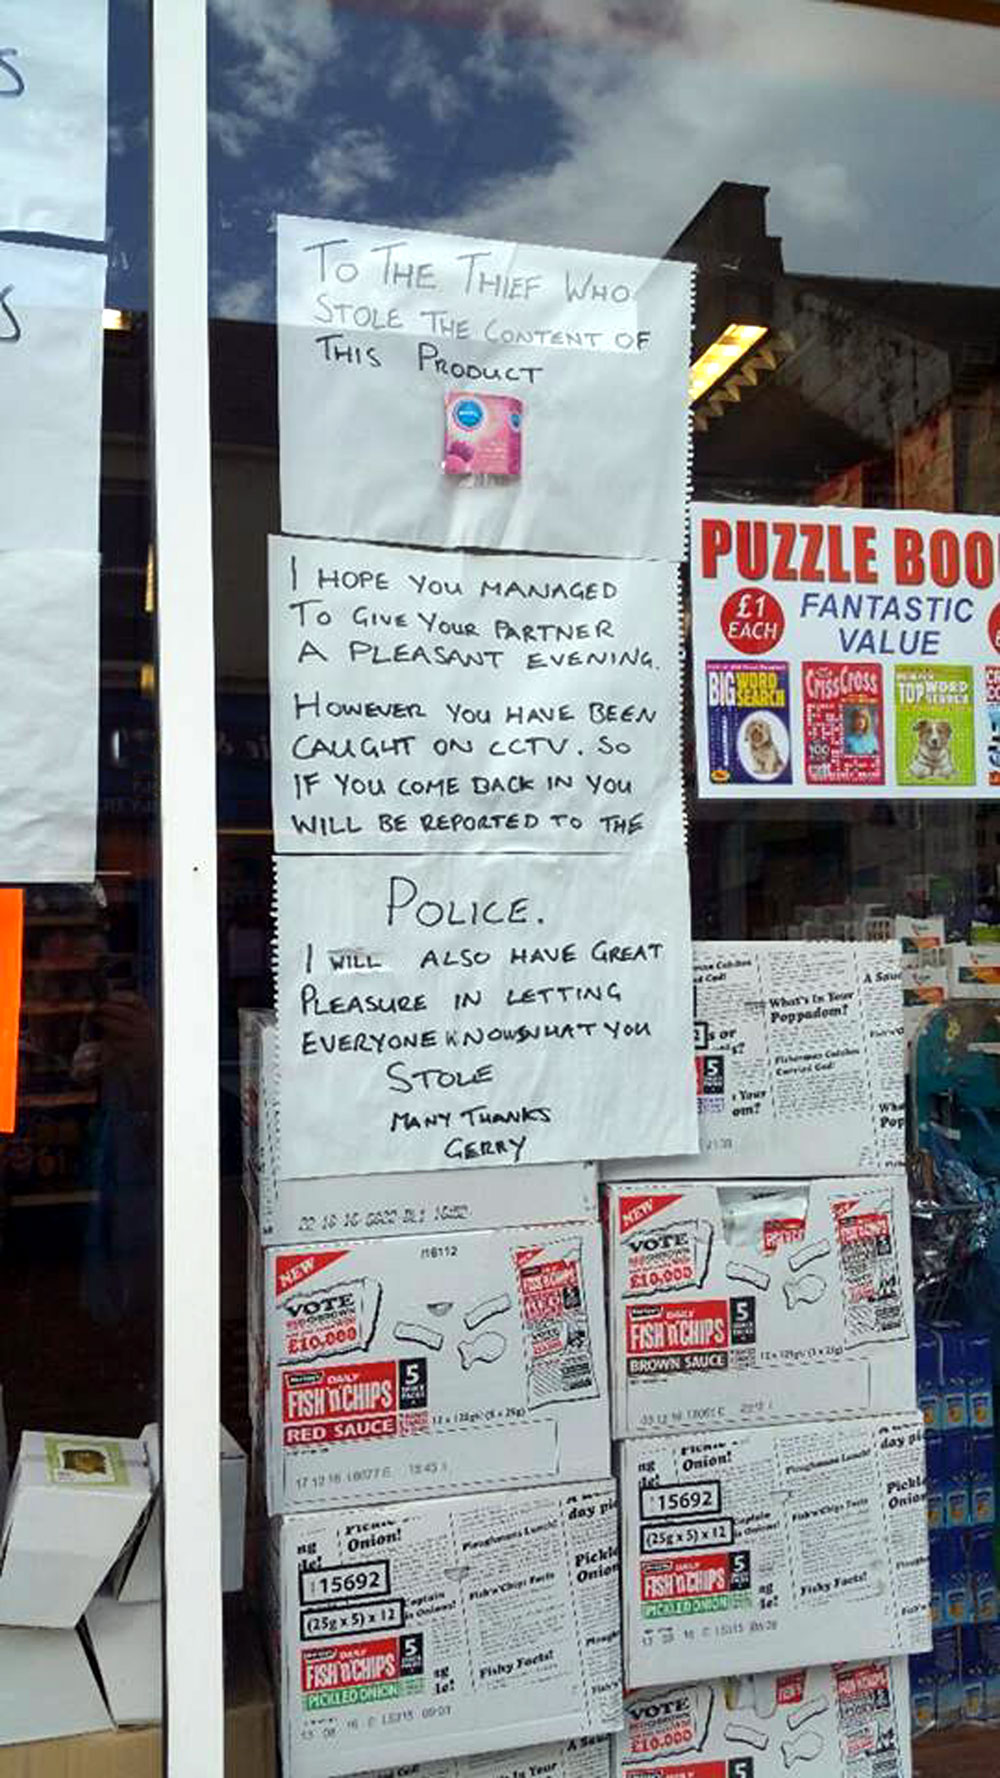 The note was posted in the shop window